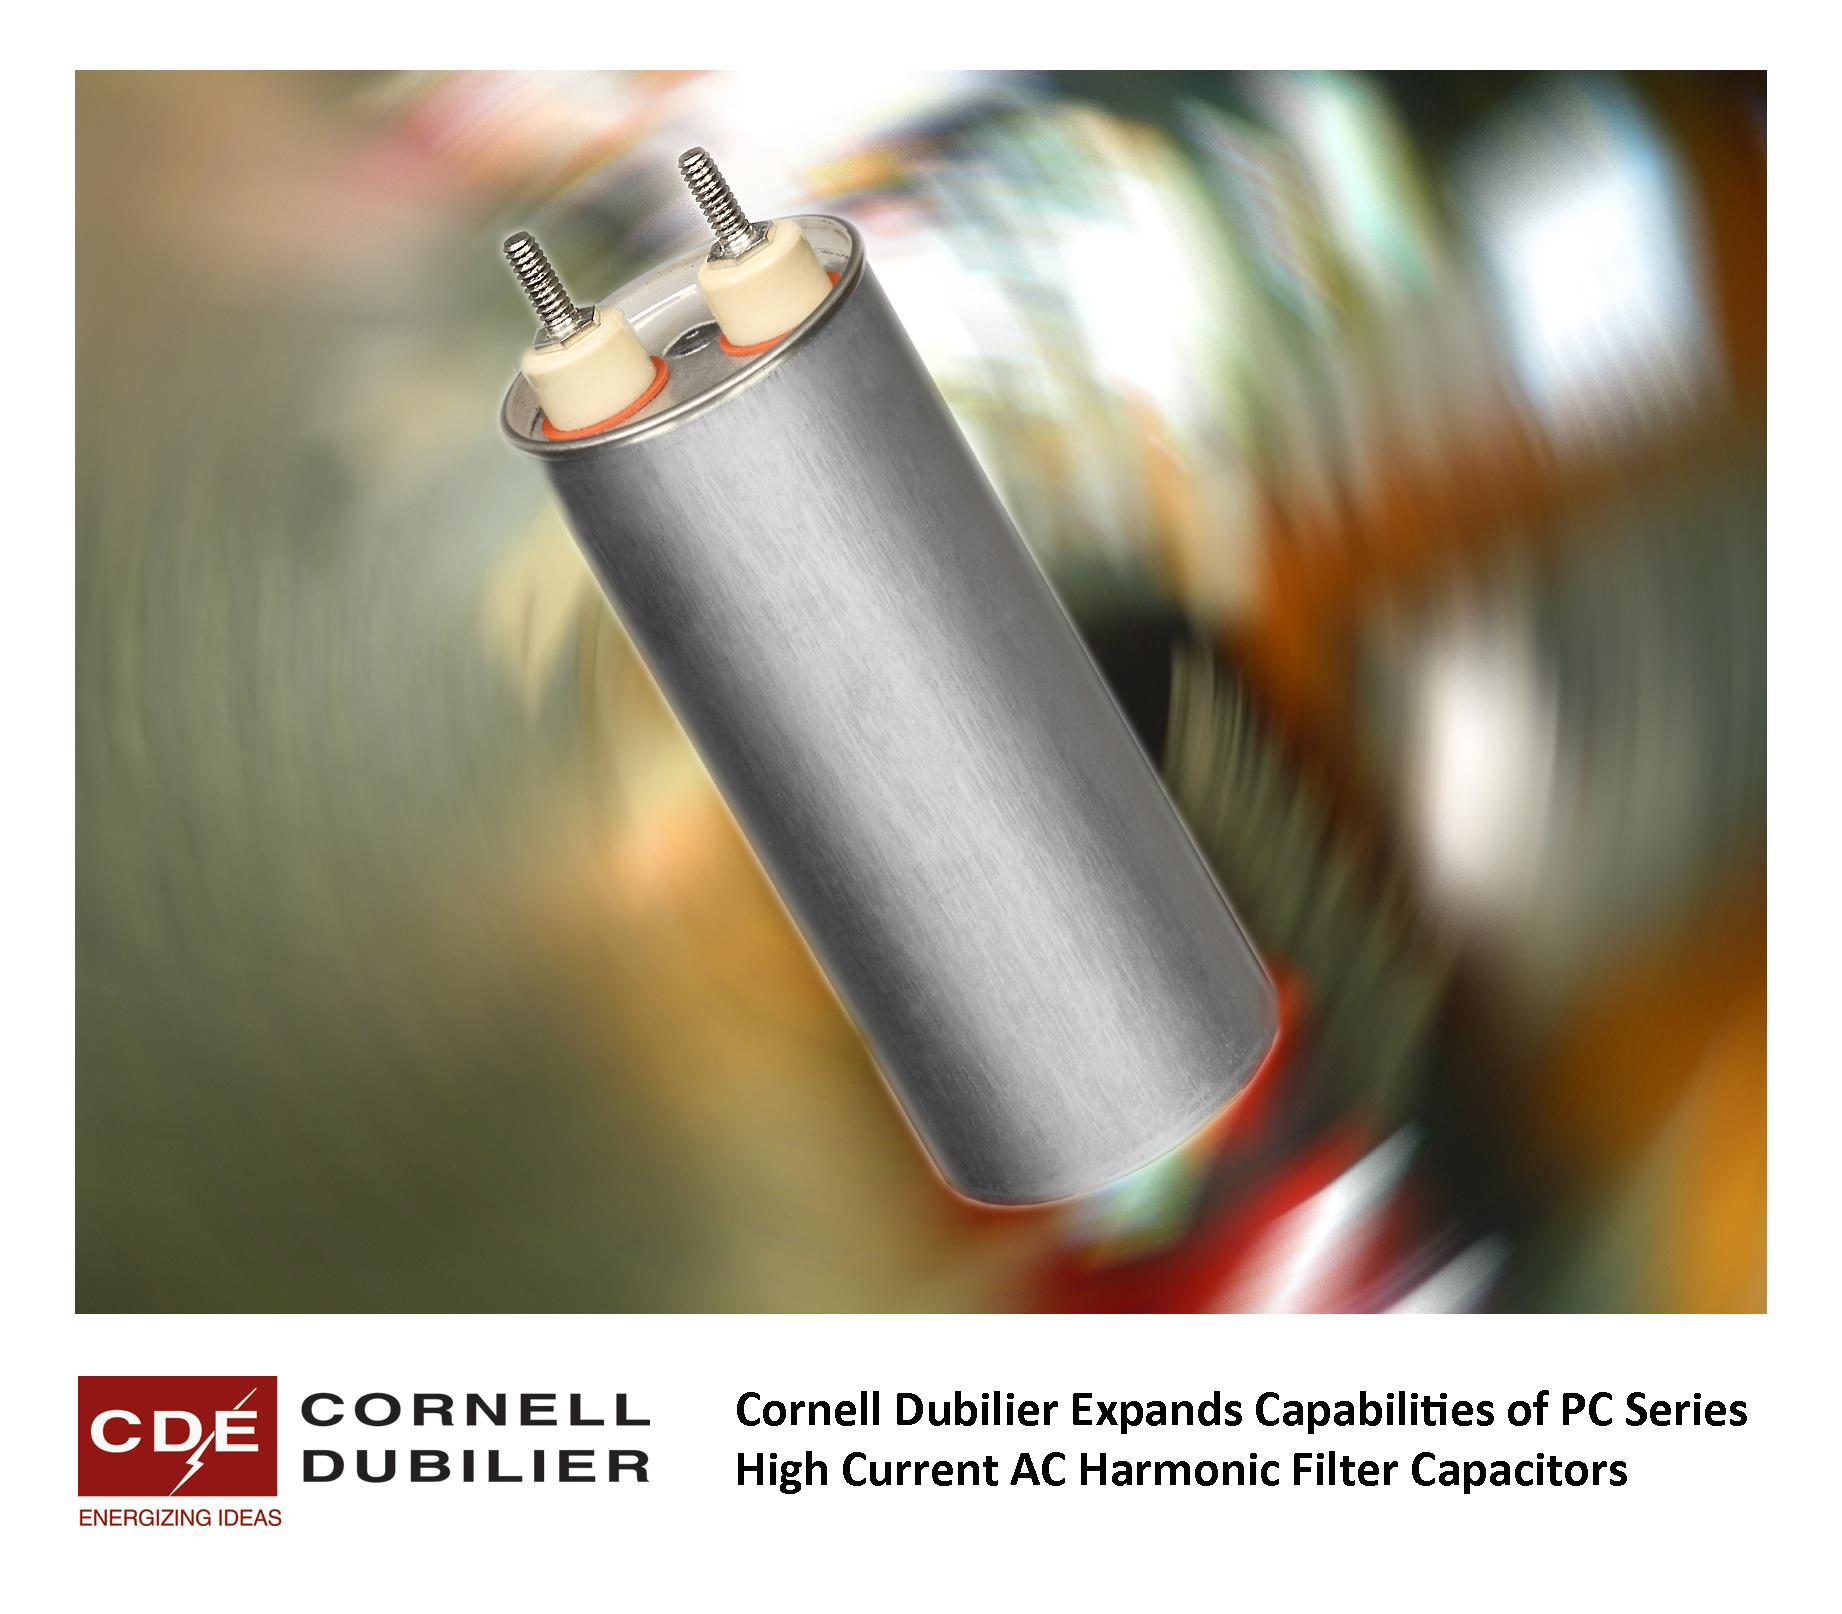 AC Harmonic Filter Capacitors Offer 85 Ampere RMS Ratings